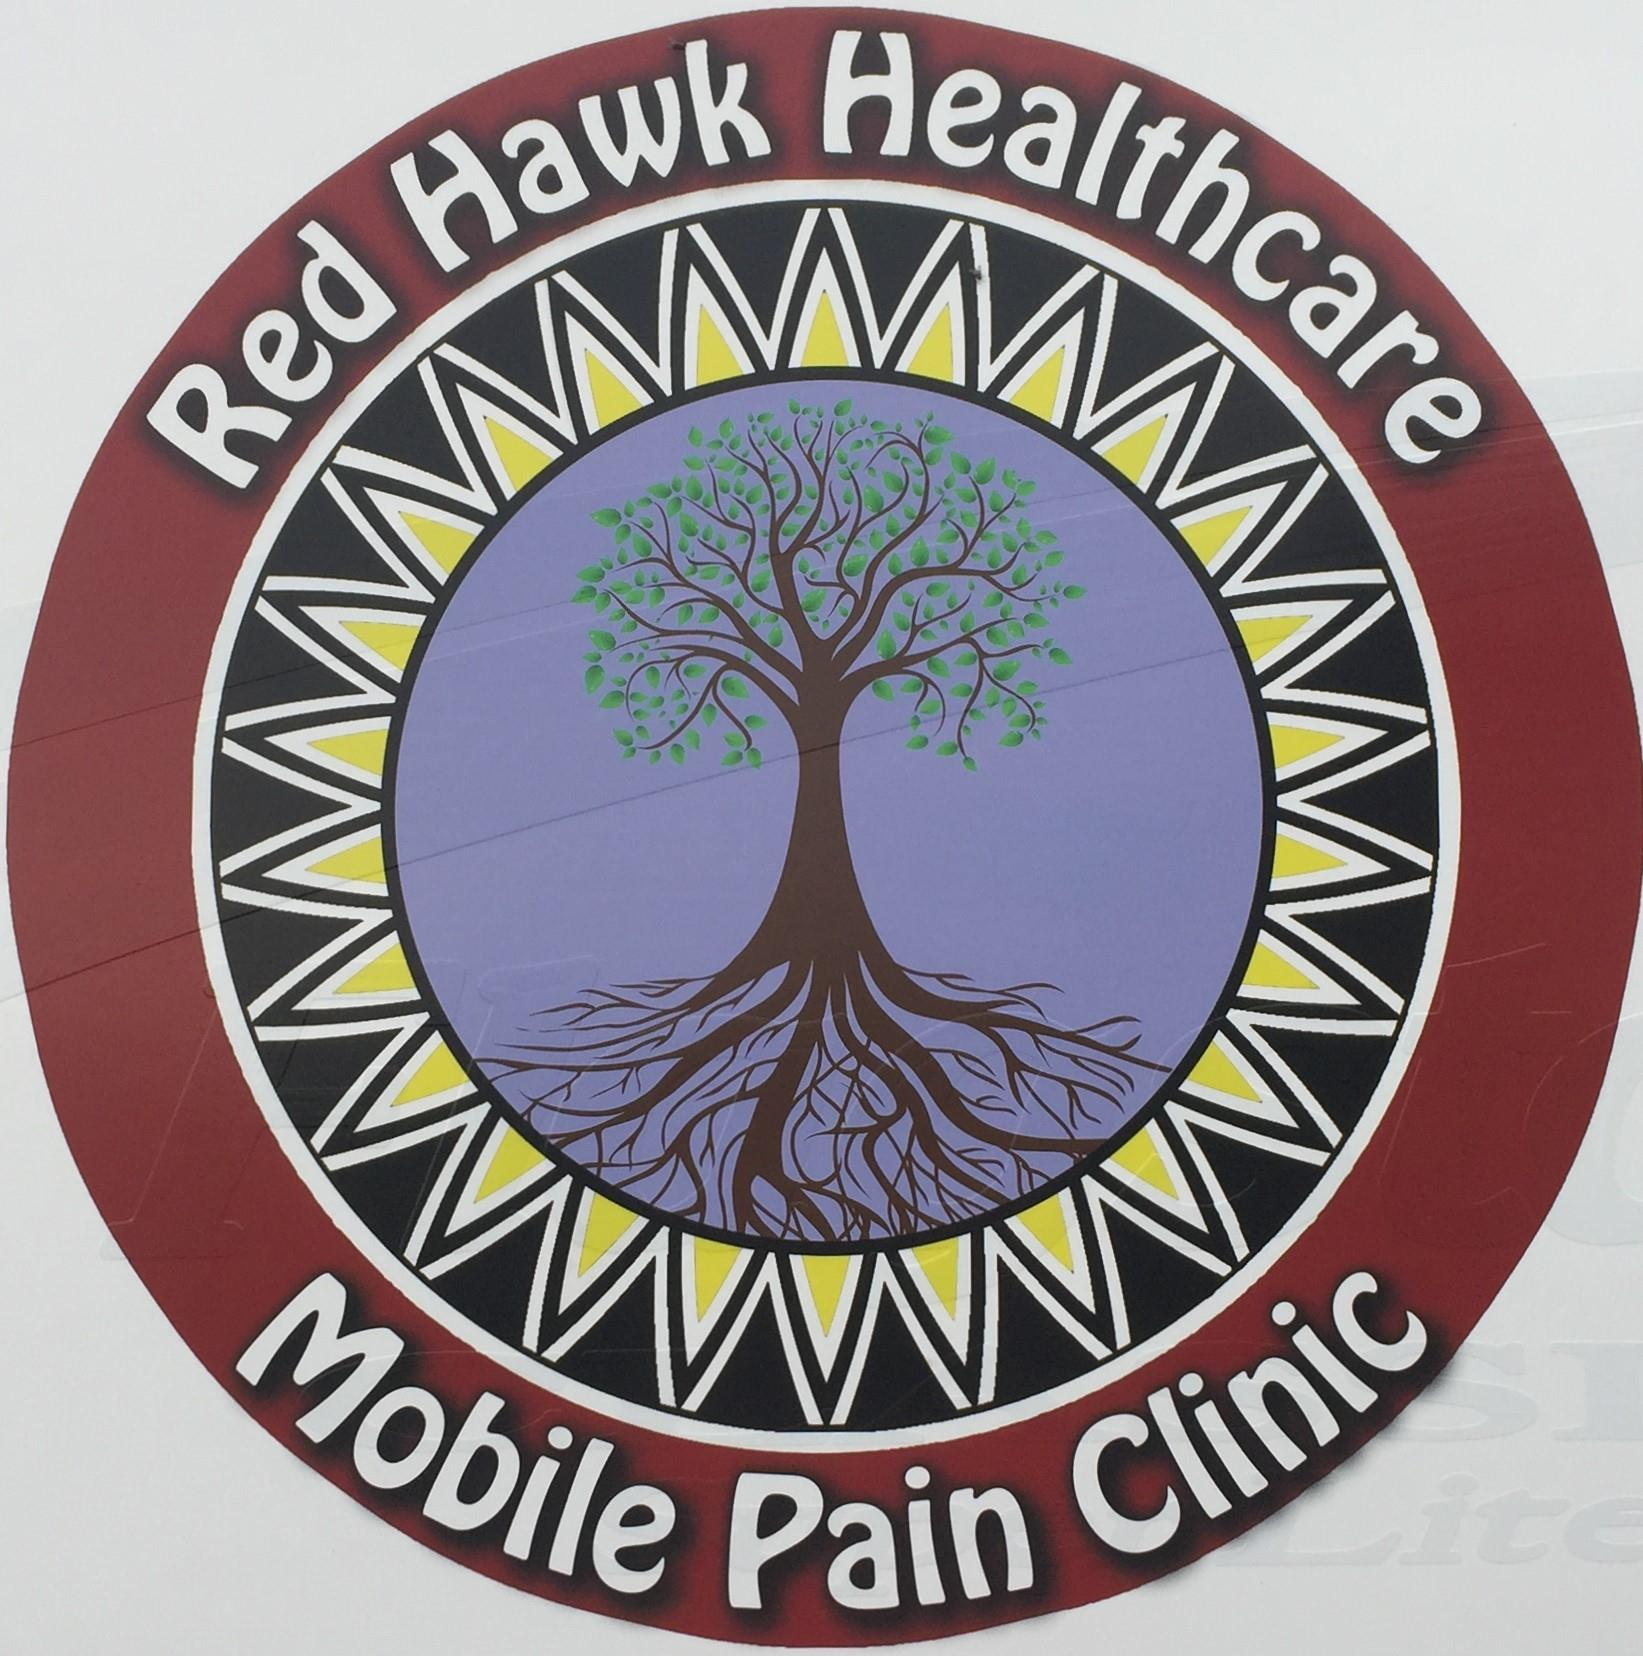 Red Hawk Healthcare Mobile Clinic